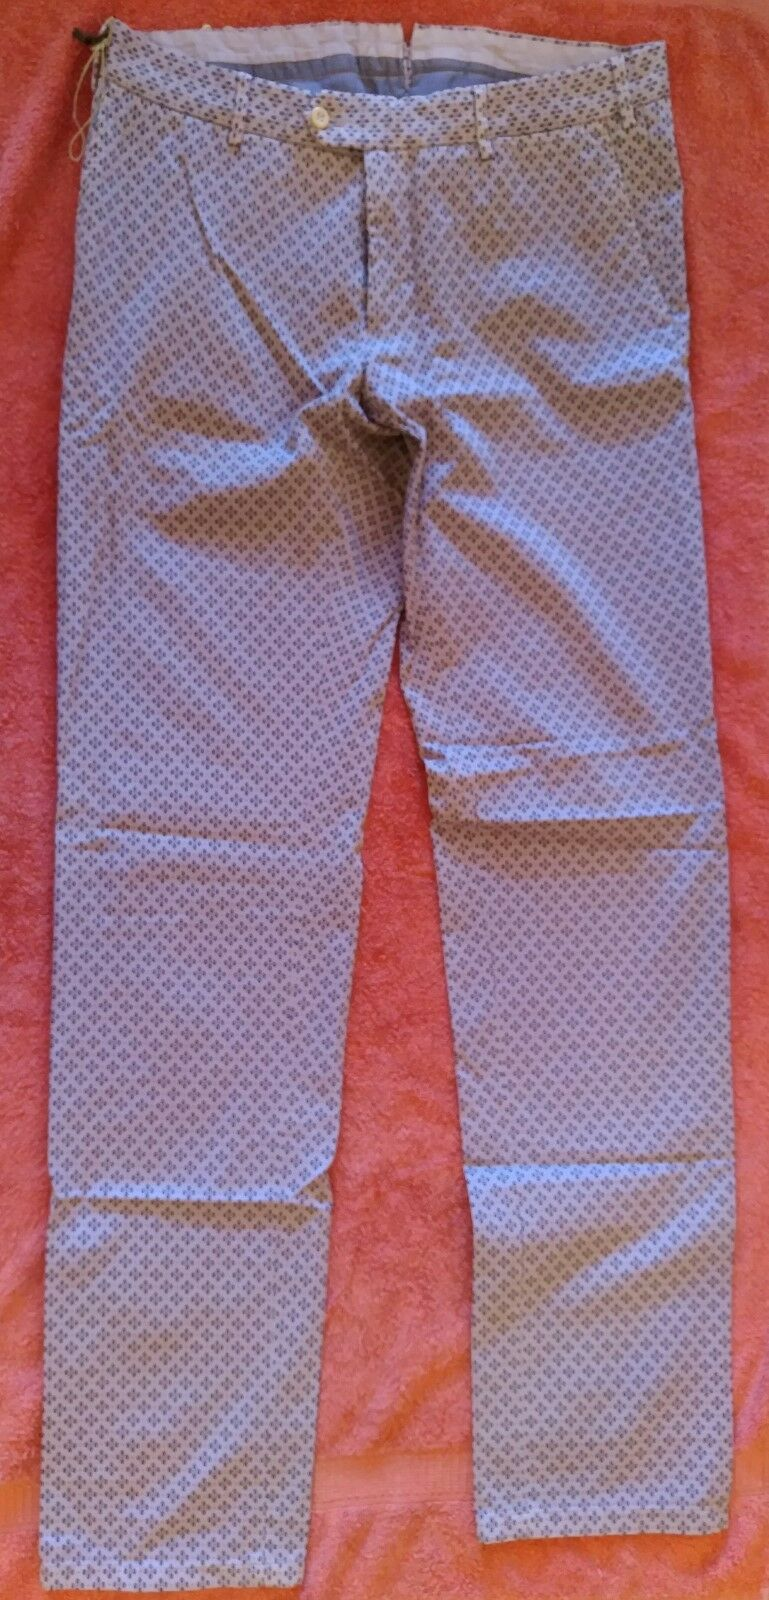 PANTALONES men abcm2 purpleA size 48 MADE IN ITALY